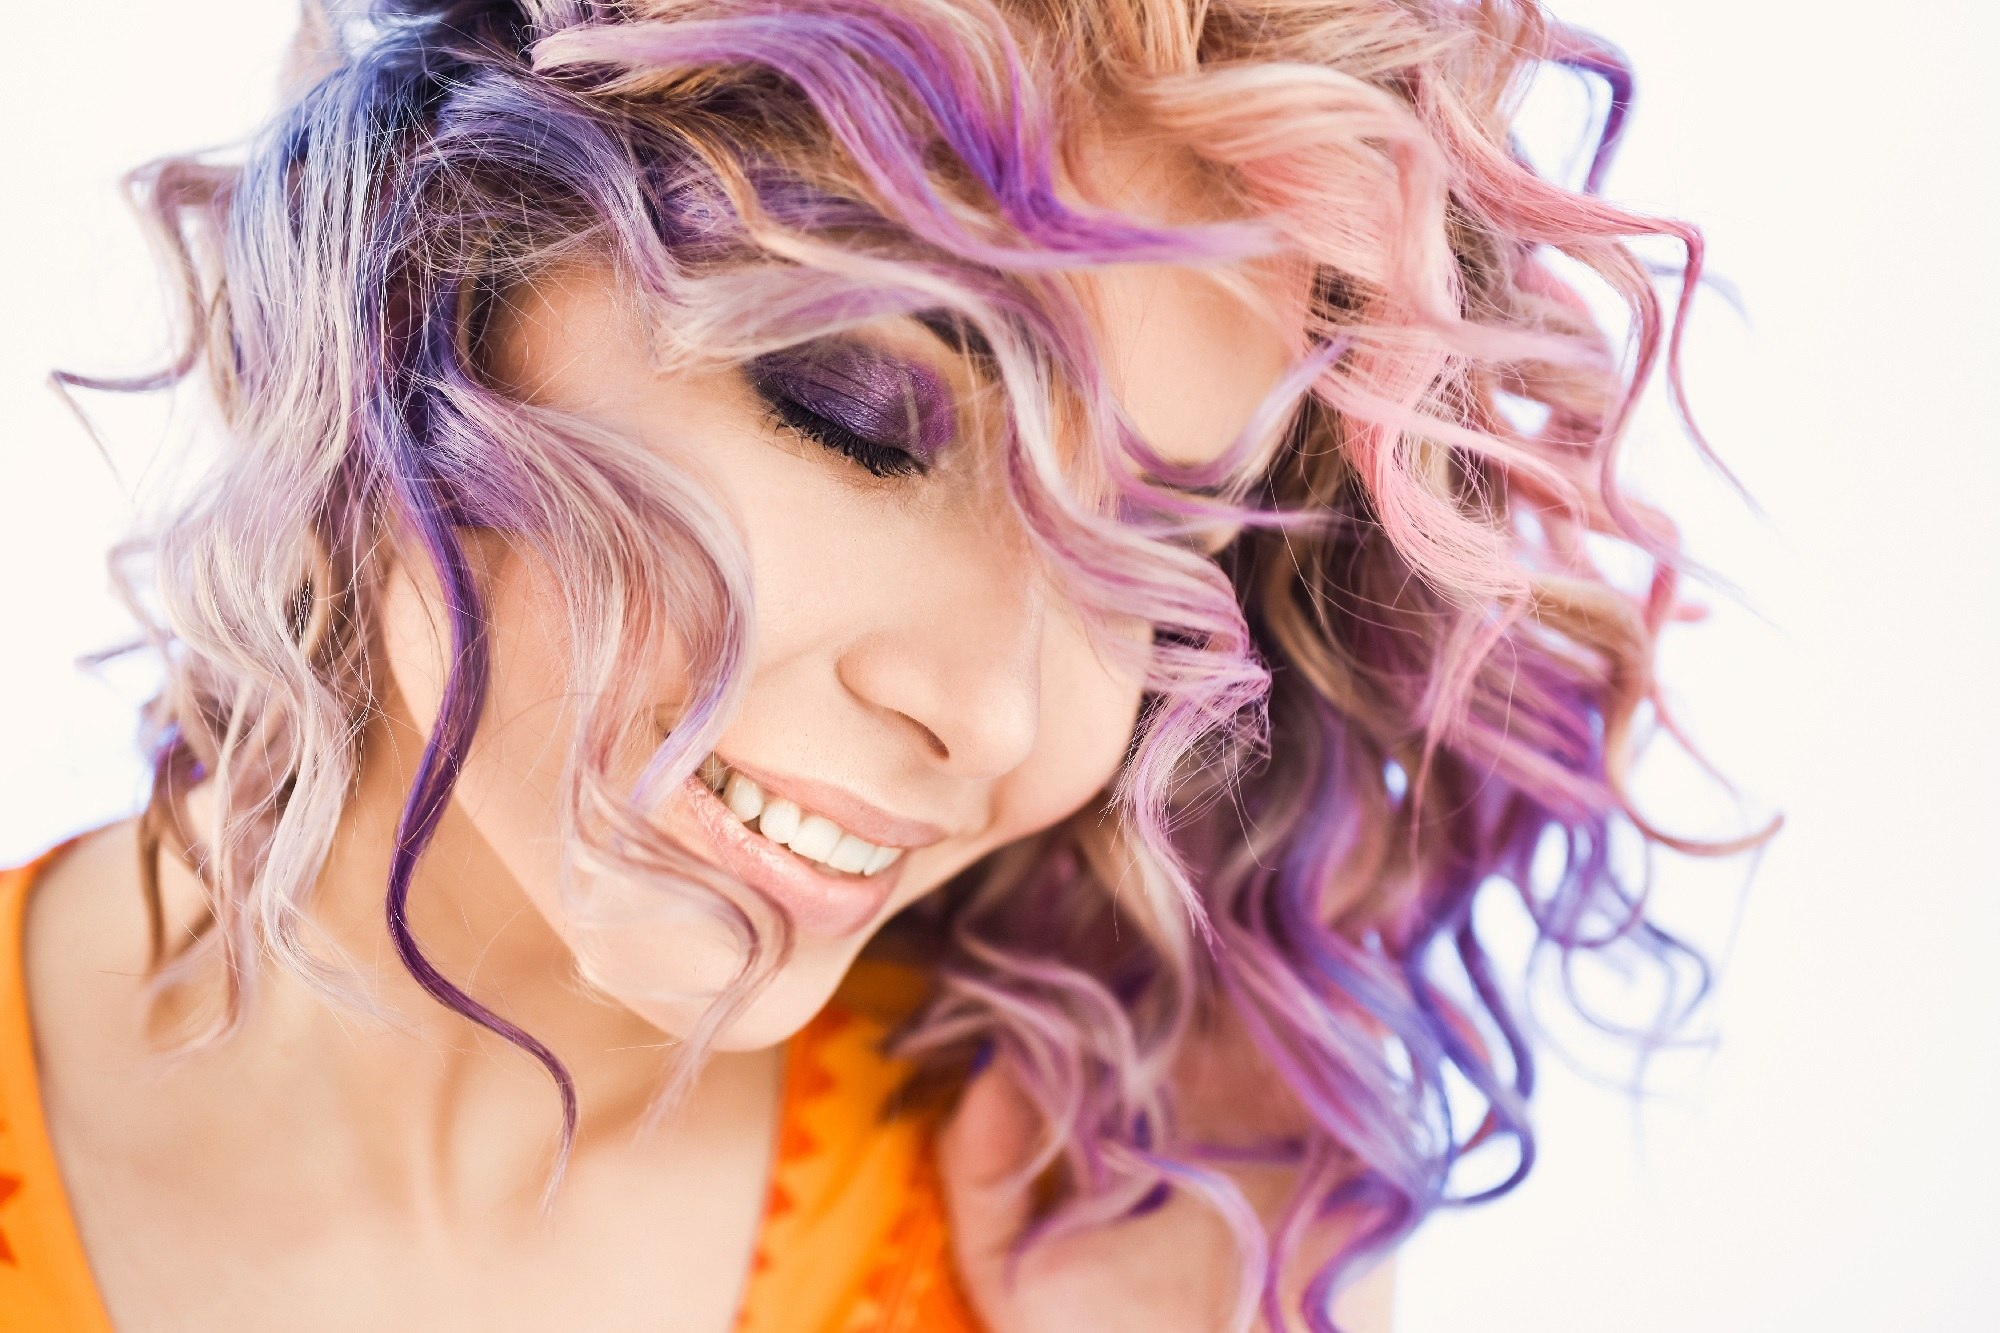 Unicorn hair - Curly colors Shutterstock